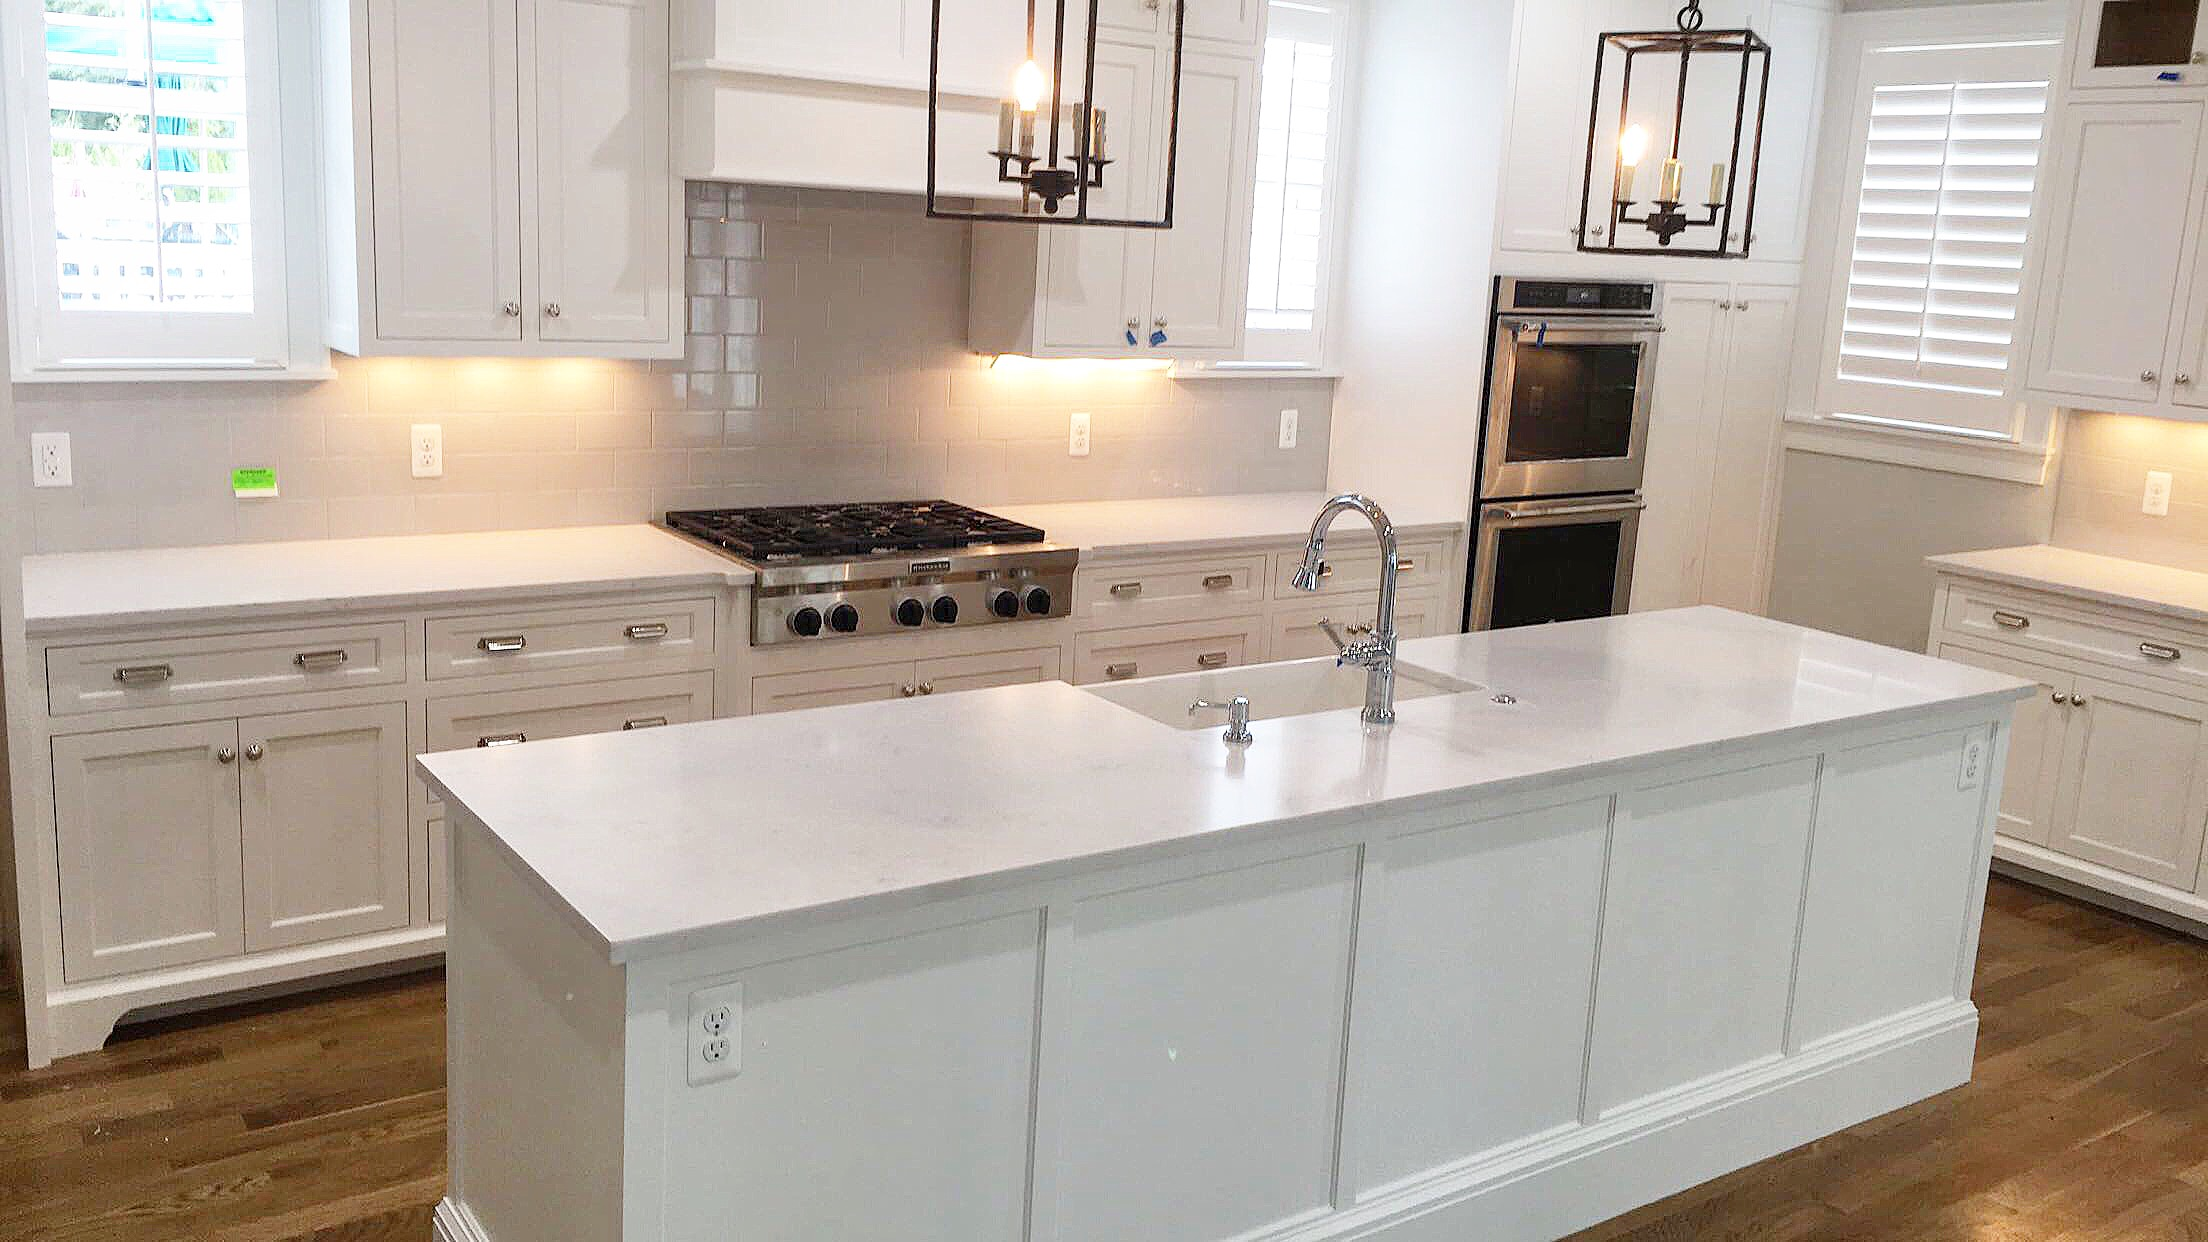 Extreme Granite And Marble Granite Countertops Marble Countertops Quartz Countertops Granite Kitchen Countertops Marble Kitchen Countertops Granite Bathroom Countertops Marble Bathroom Countertops Serving All Of Michigan Granite And Marble